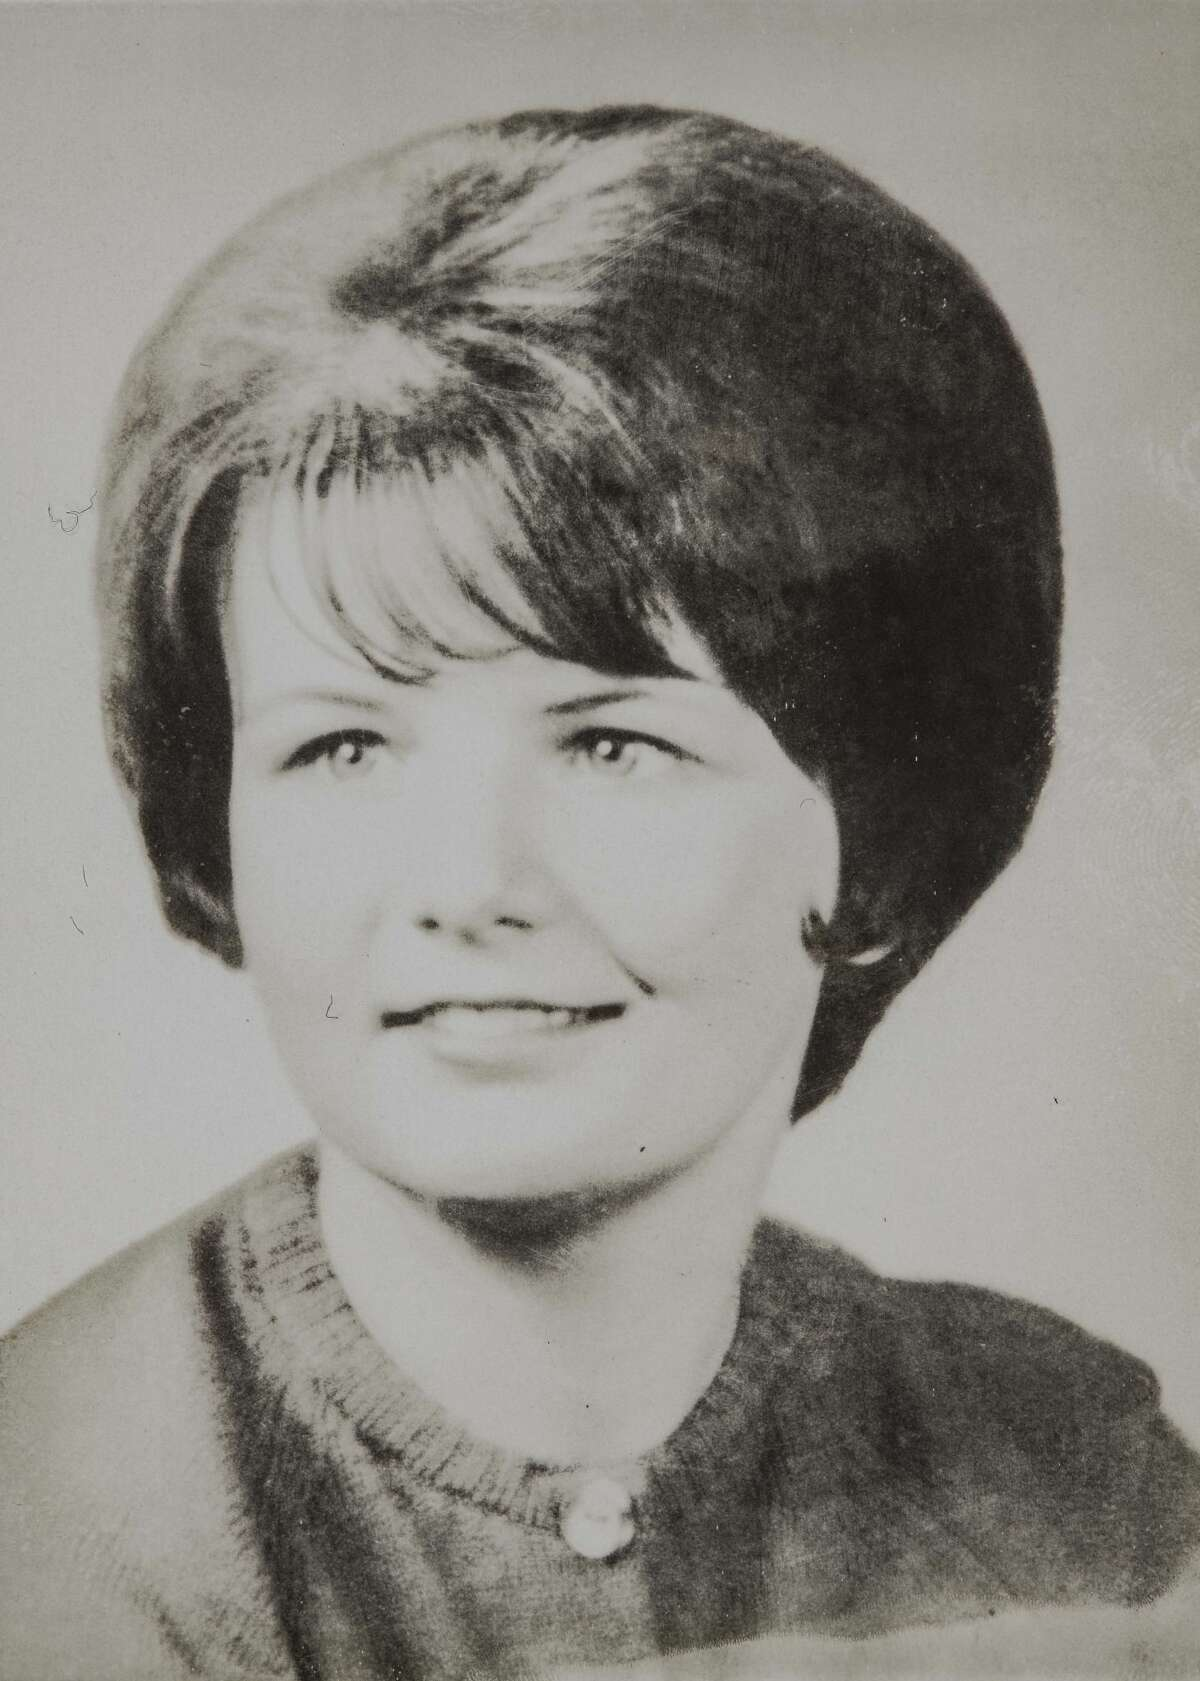 Susan Galvin, 20, who was found dead in 1967 at the Seattle Center. After 52 years, the Seattle Police Department are confident that they've found her killer. A man named Frank Wypych, who died in 1987.